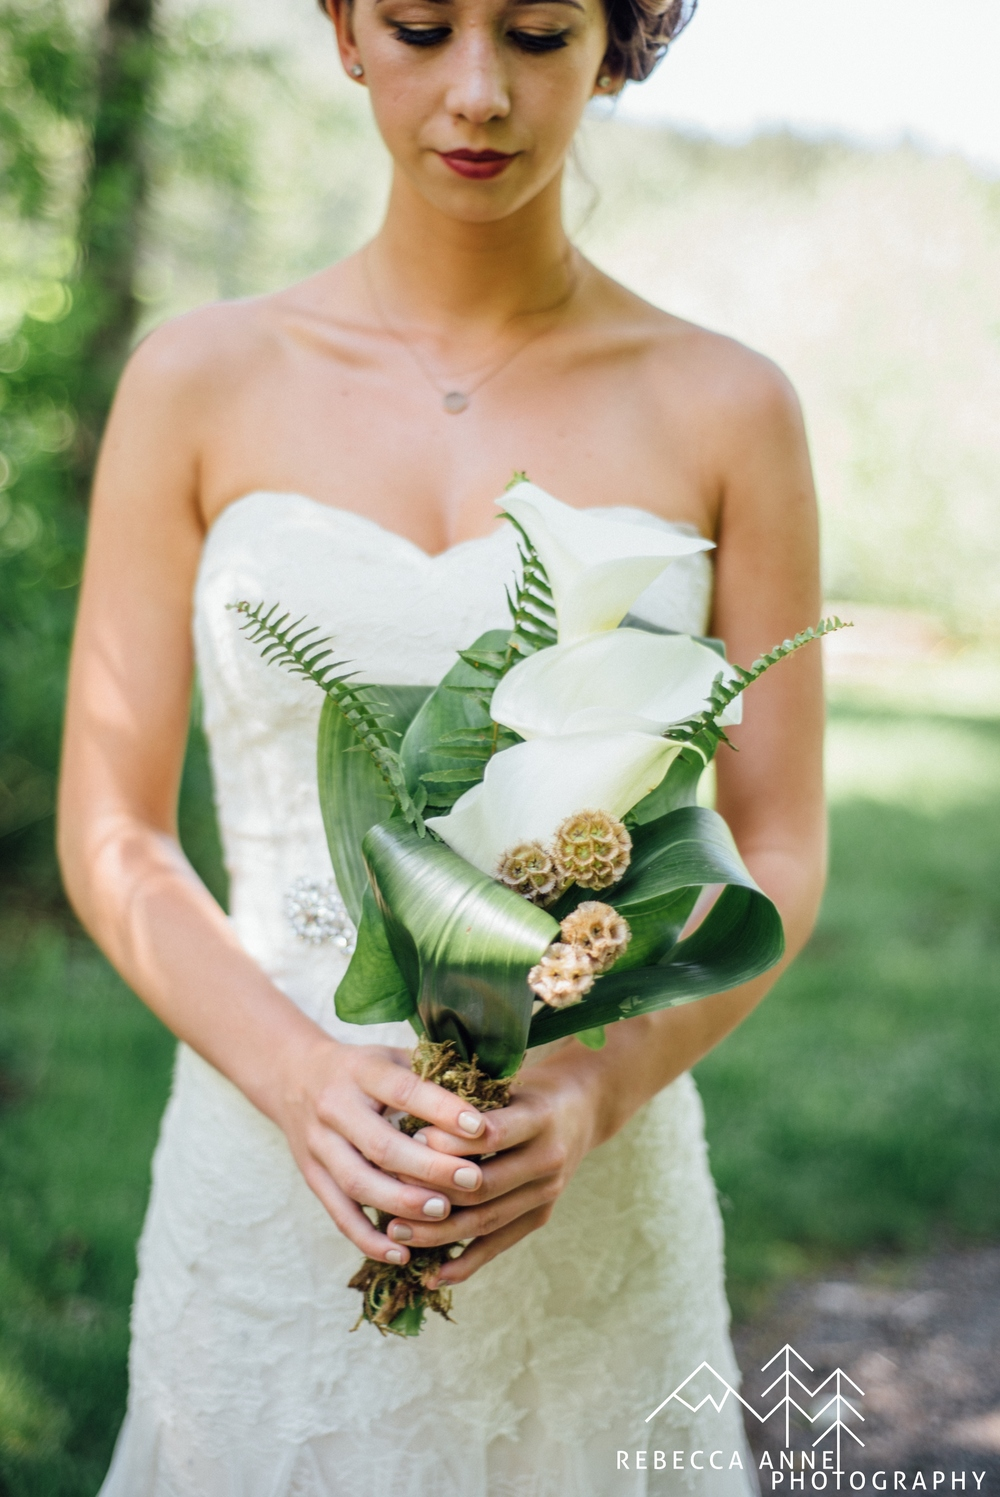 Ethereal Woodland shoot Published in  Artfully Wed .   Published in  Desiree Hartsock   Blogged by  Rebecca Ann  e